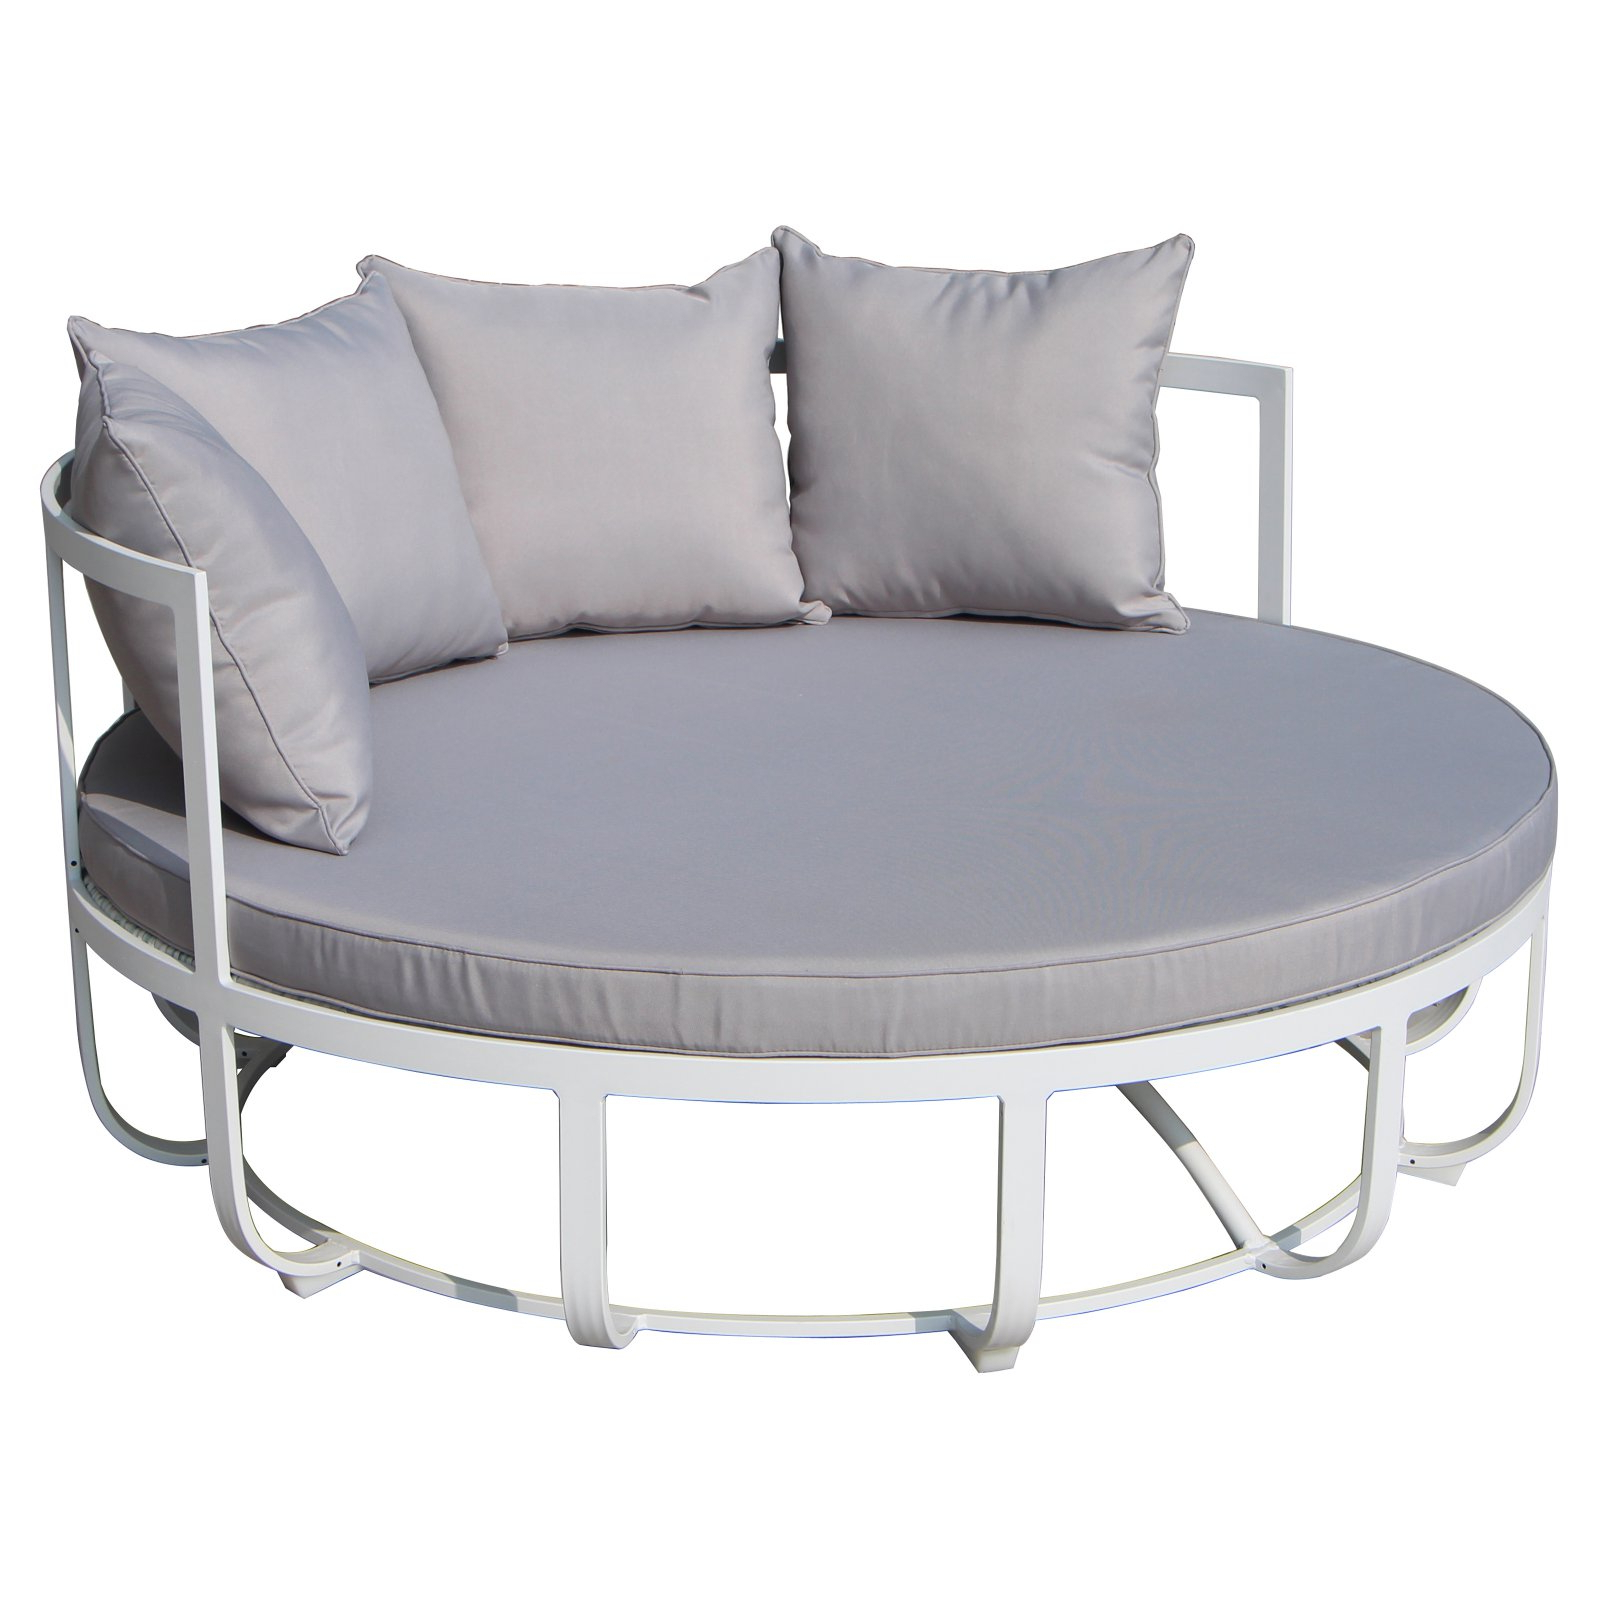 Best And Newest Olu Bamboo Large Round Patio Daybeds With Cushions With Regard To Pangea Outdoor Naples Outdoor Daybed Taupe (View 12 of 20)